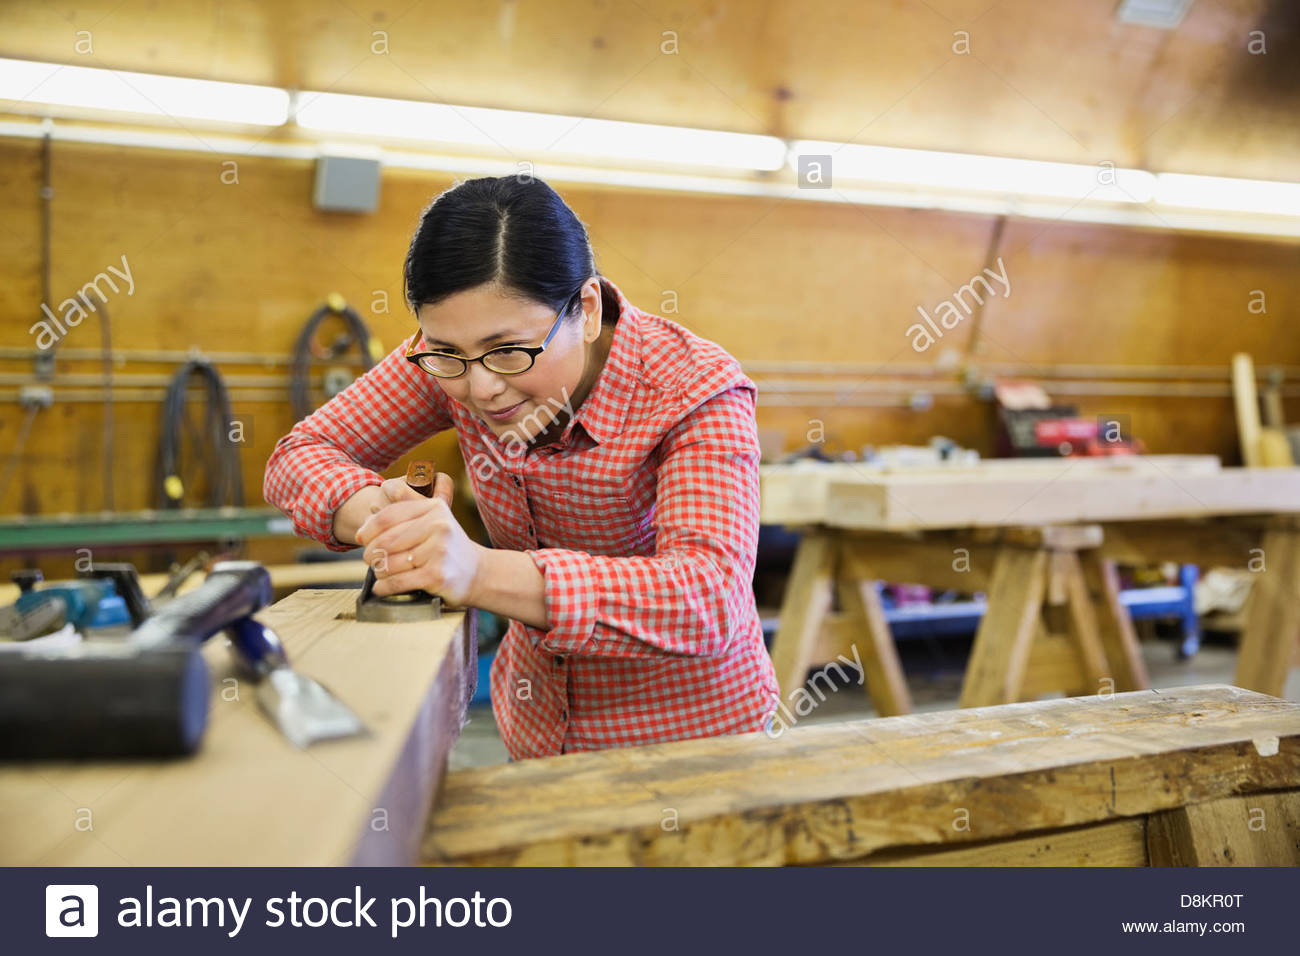 Woodworker using hand plane on wooden beam - Stock Image